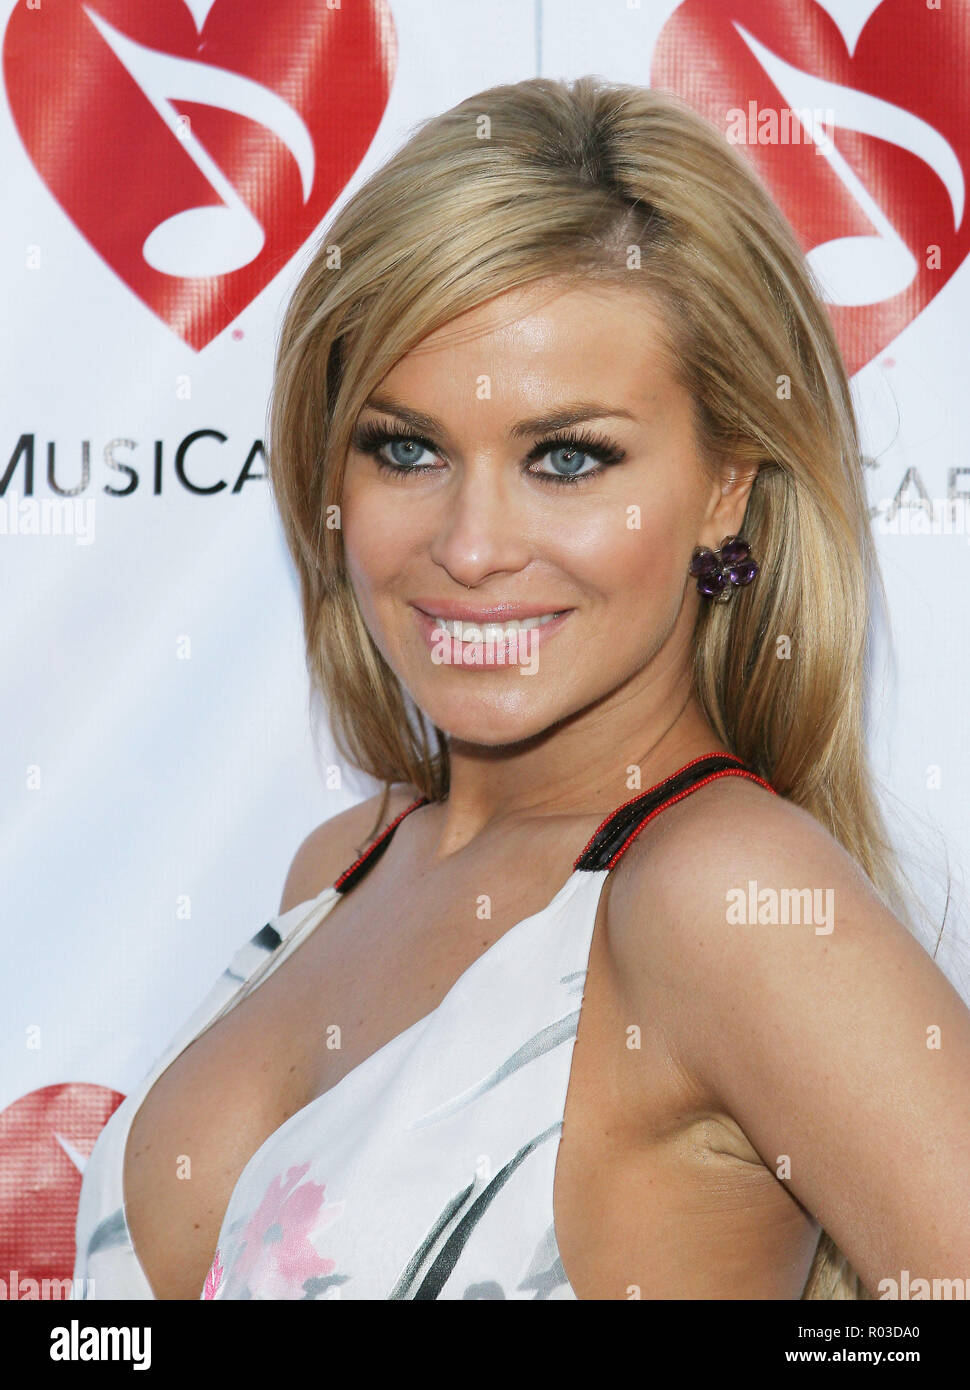 Carmen Electra arriving at The Inaugural MusiCares MAP Fund benefit concert honoring Dave Navarro at the Henry Fonda Theatre  in Los Angeles. May 20, 2005.ElectraCarmen0008 Red Carpet Event, Vertical, USA, Film Industry, Celebrities,  Photography, Bestof, Arts Culture and Entertainment, Topix Celebrities fashion /  Vertical, Best of, Event in Hollywood Life - California,  Red Carpet and backstage, USA, Film Industry, Celebrities,  movie celebrities, TV celebrities, Music celebrities, Photography, Bestof, Arts Culture and Entertainment,  Topix, headshot, vertical, one person,, from the year , 2 - Stock Image